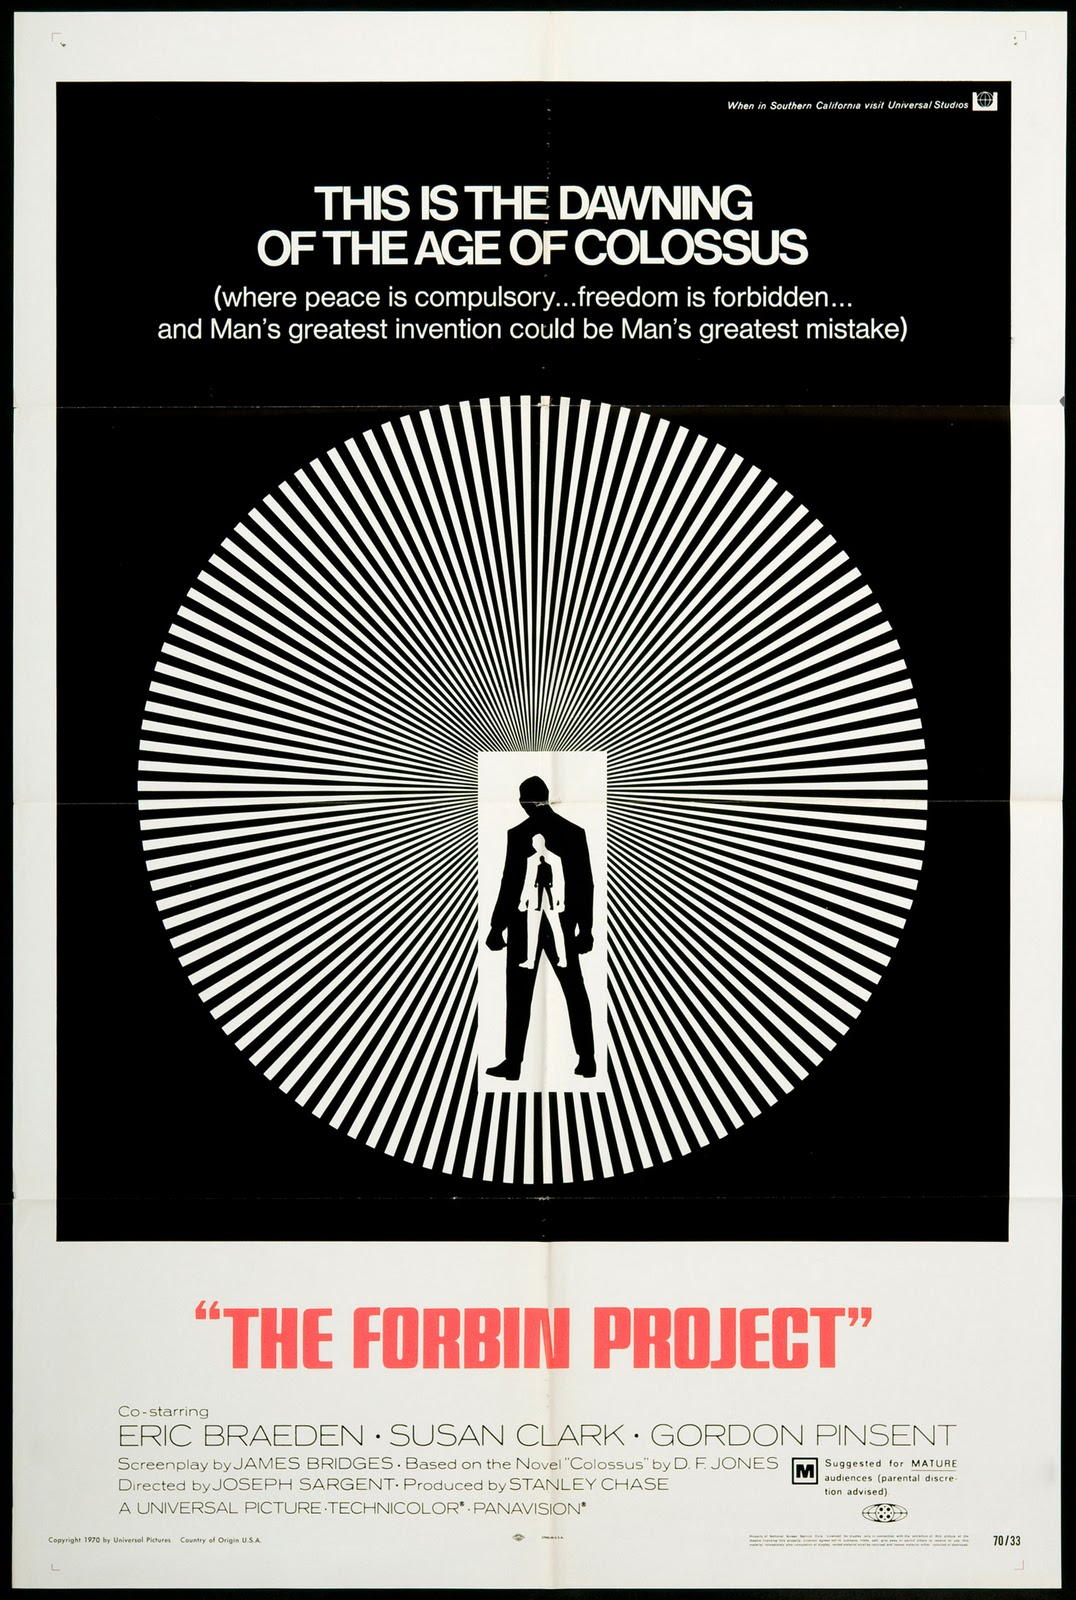 colossus_the_forbin_project_poster_1970_01.jpg